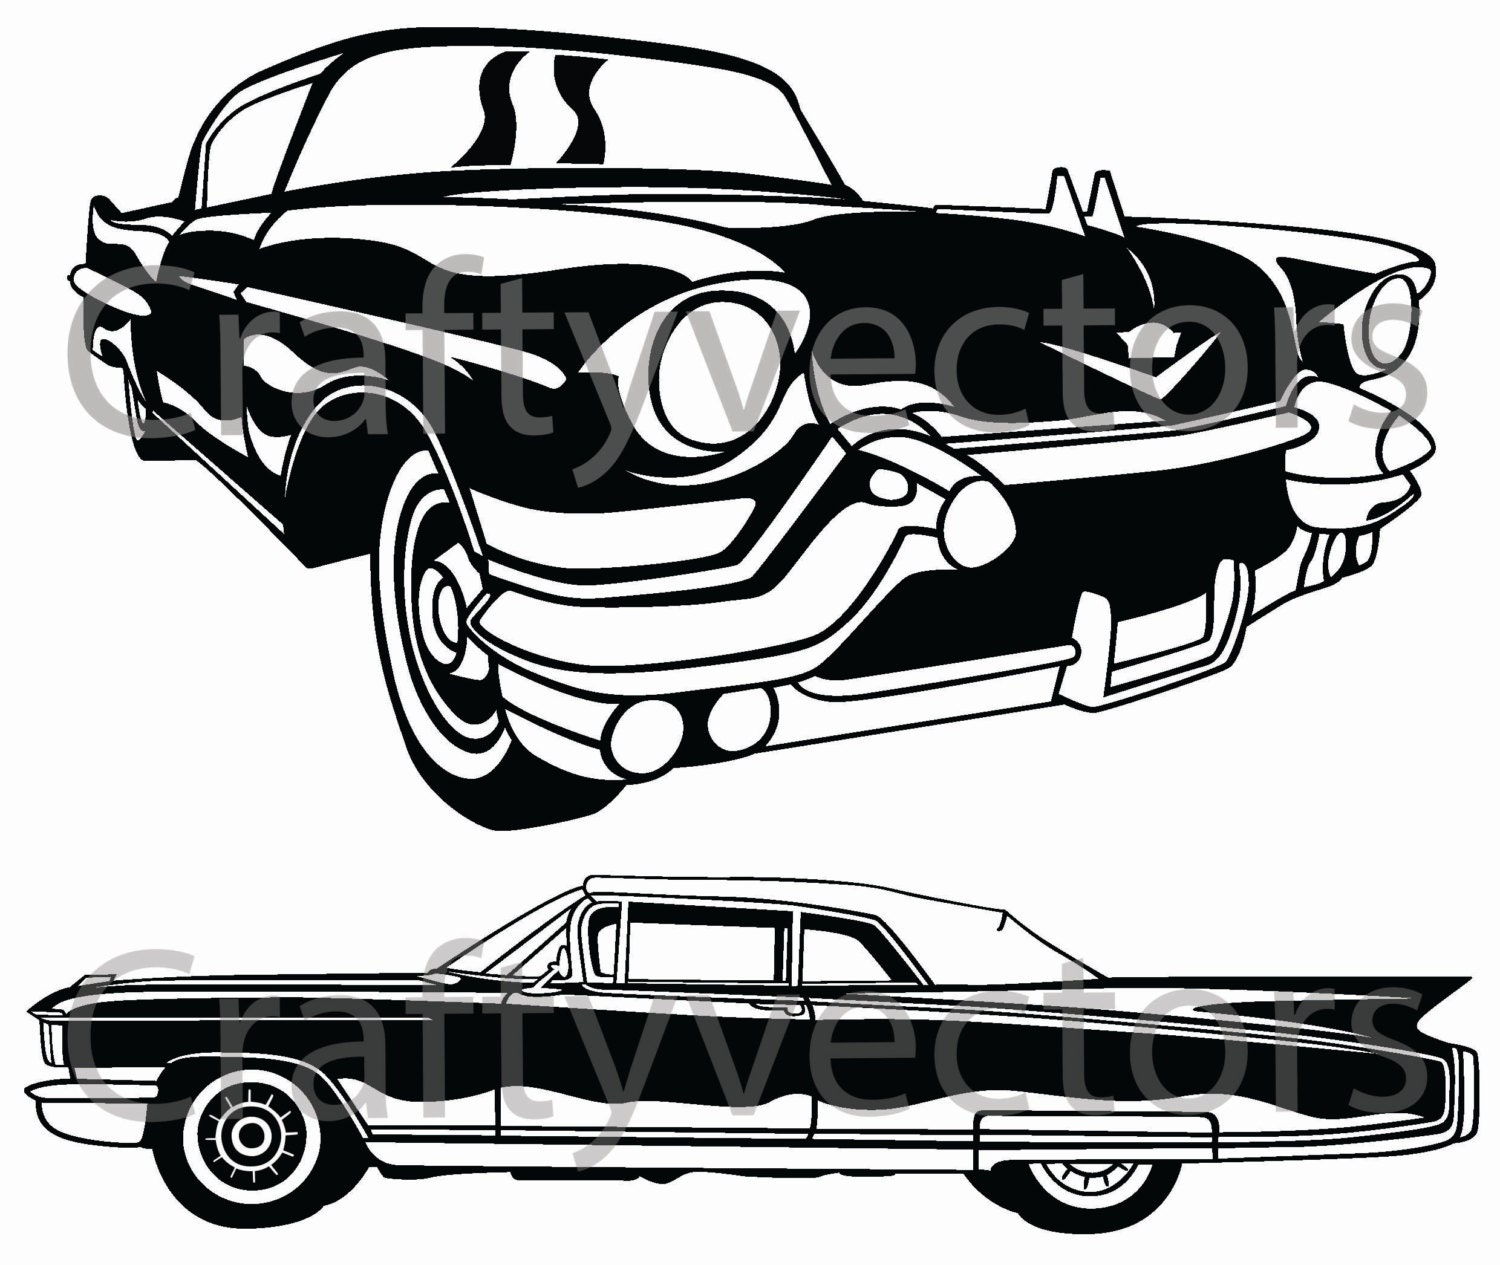 1939 ford sedan delivery wiring diagram database 1954 Chevy Sedan Delivery cadillac vector svg file etsy ford panel truck history 1939 ford sedan delivery